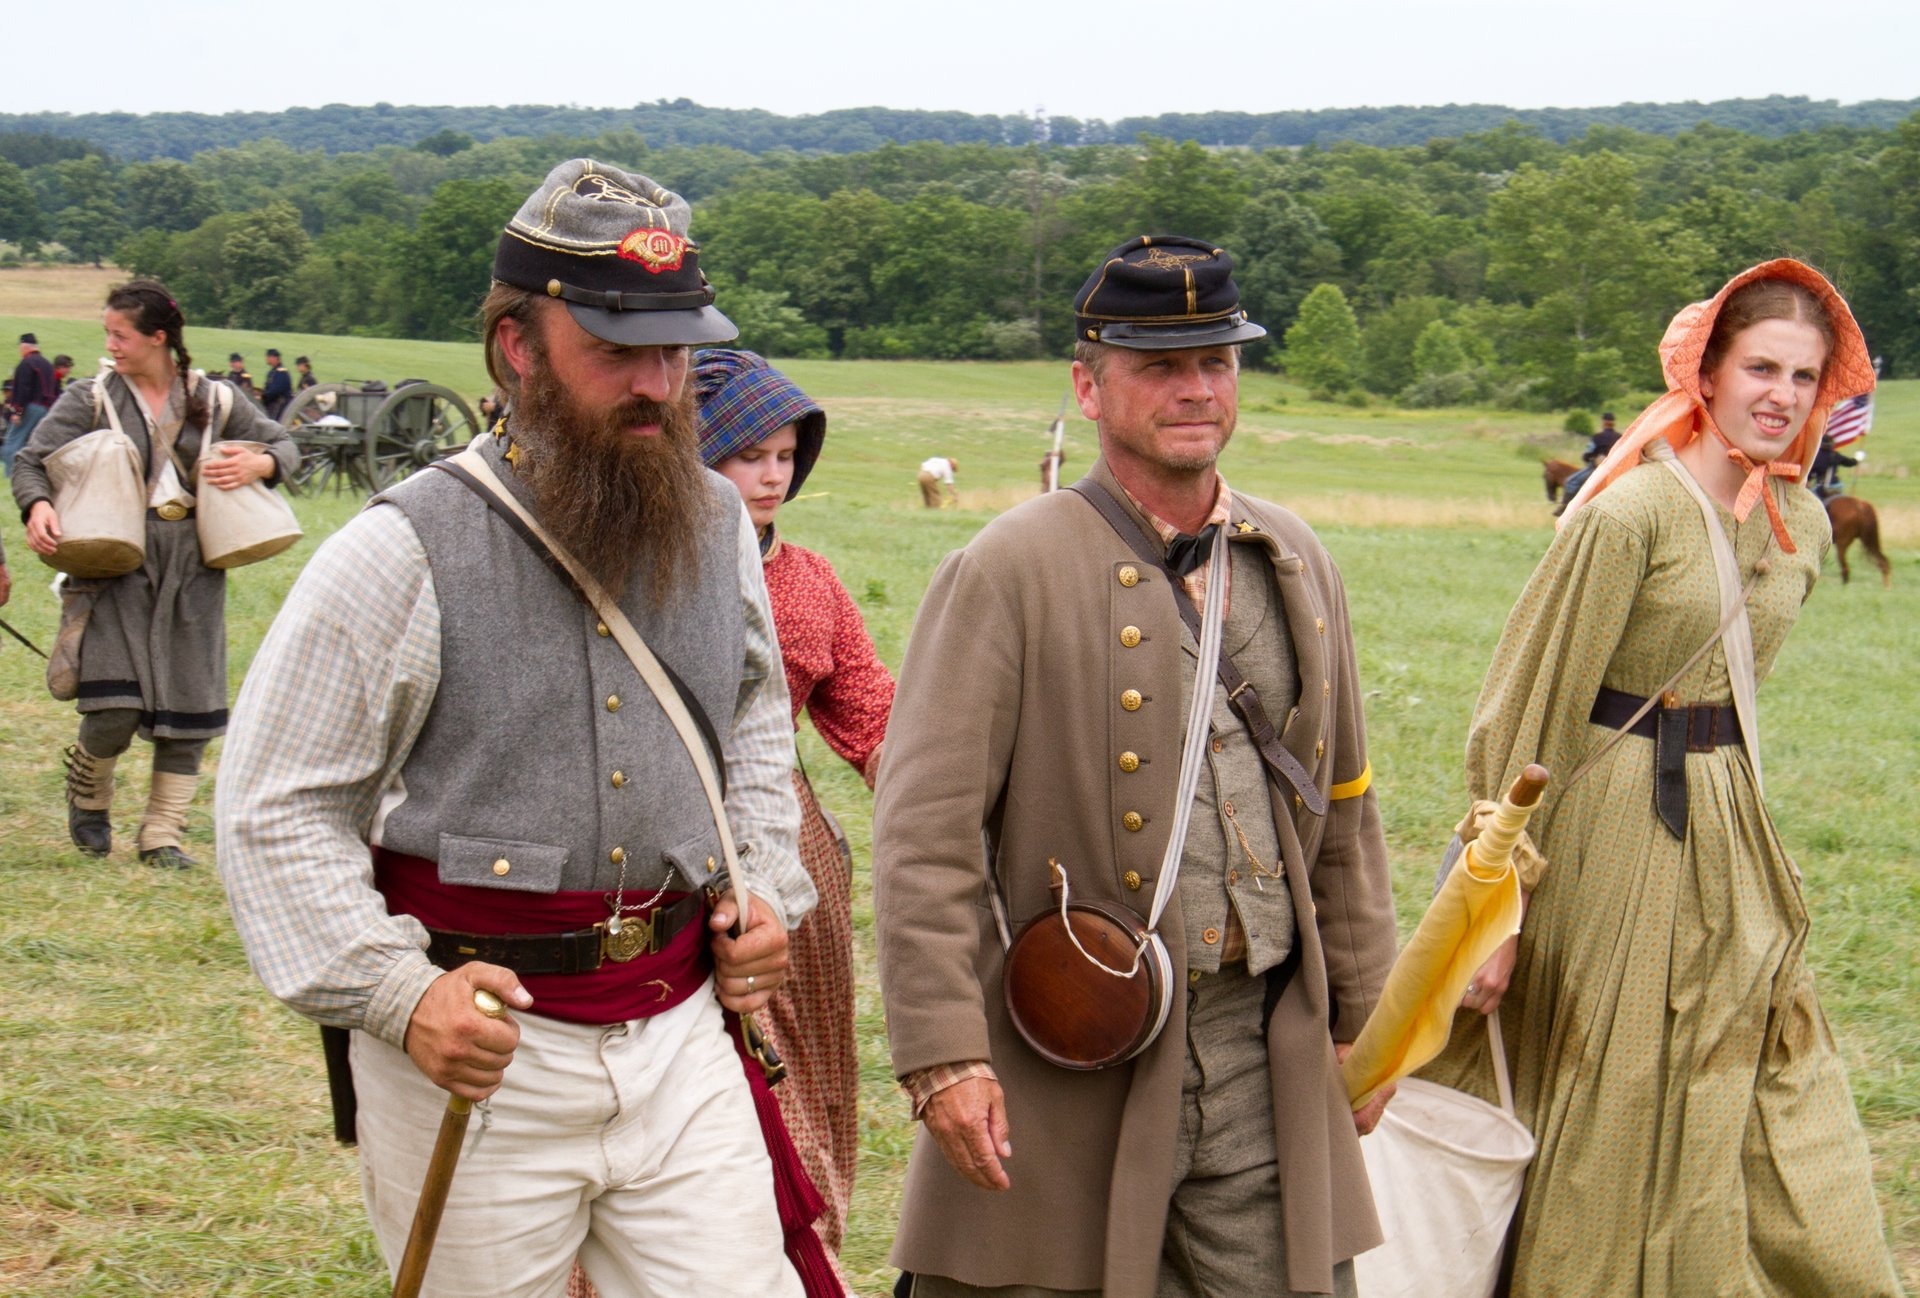 Gettysburg Civil War Battle Reenactment in Pennsylvania - Best Season 2020